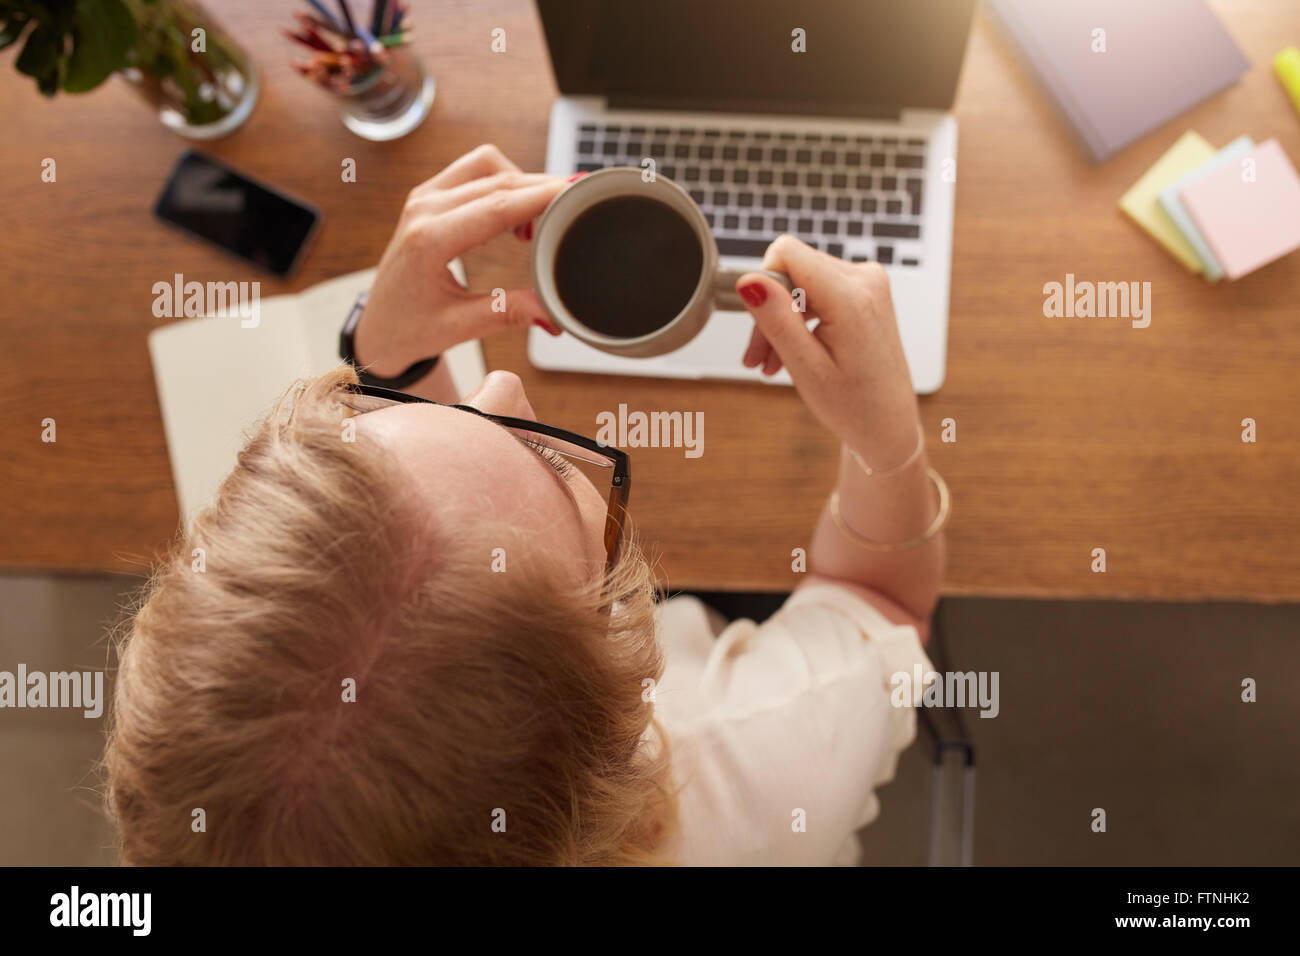 Overhead view of woman drinking coffee while sitting at her work desk at home office. - Stock Image